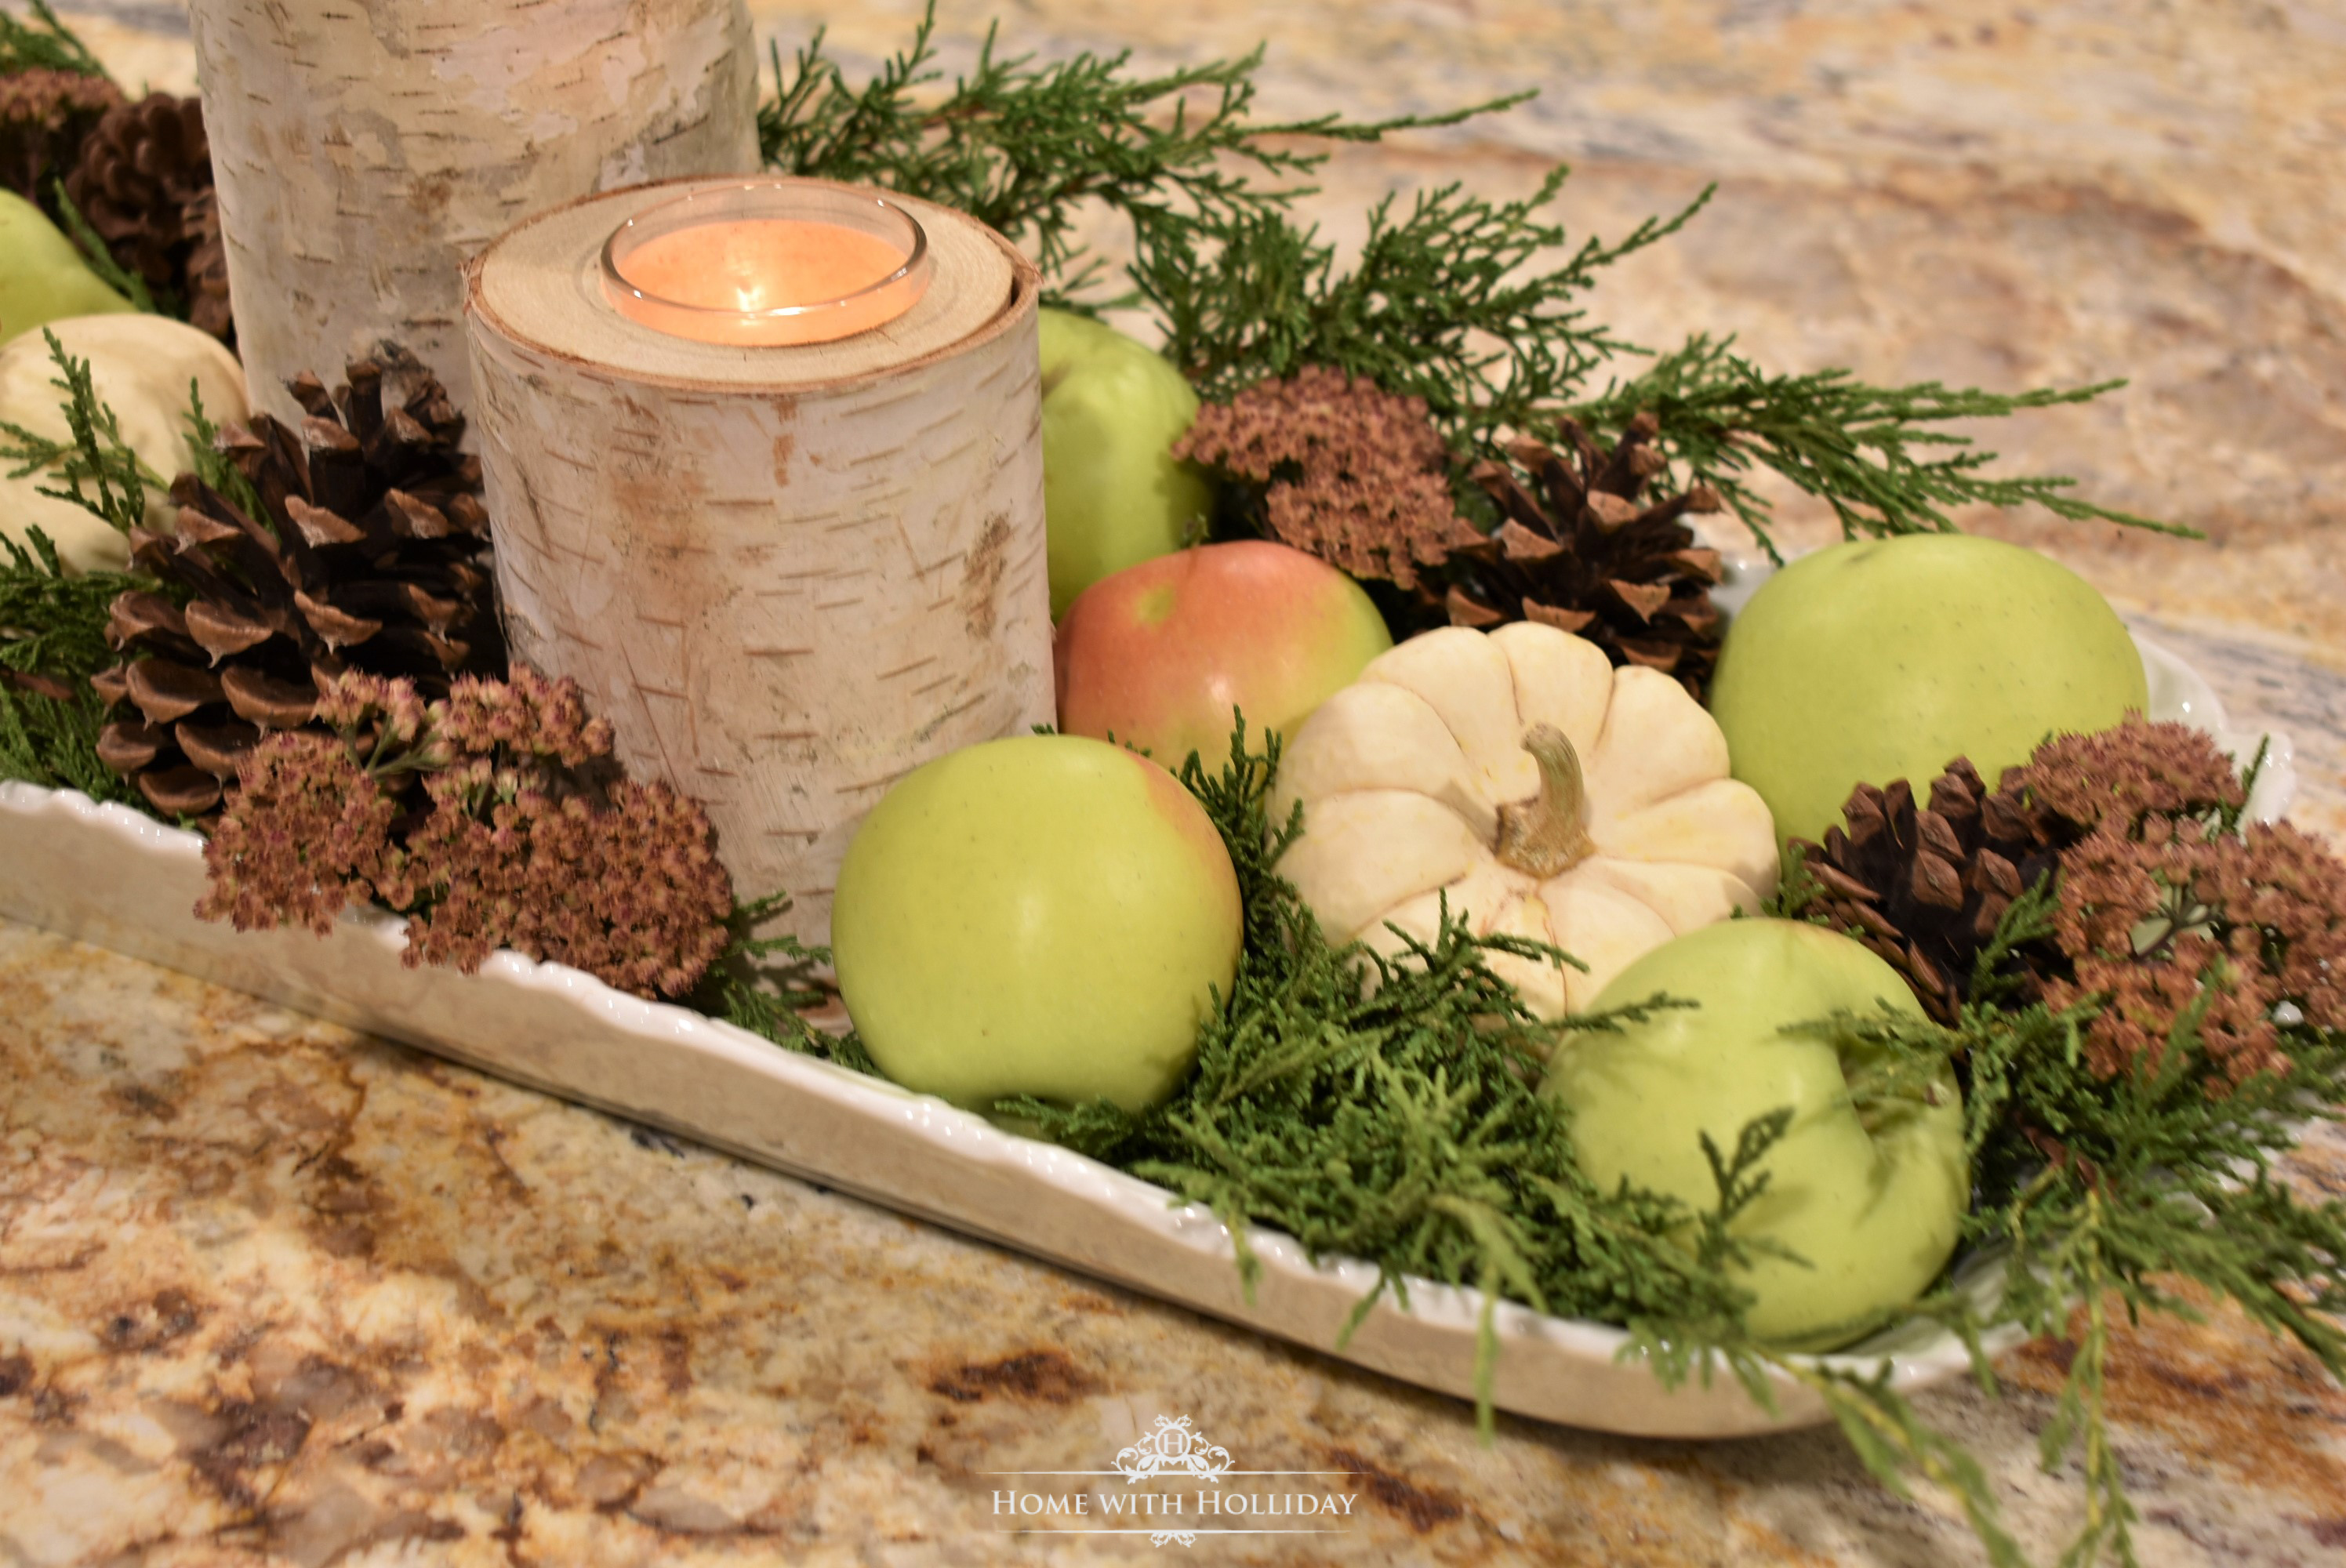 A Fall Centerpiece with Green Apples and Pumpkins - Home with Holliday